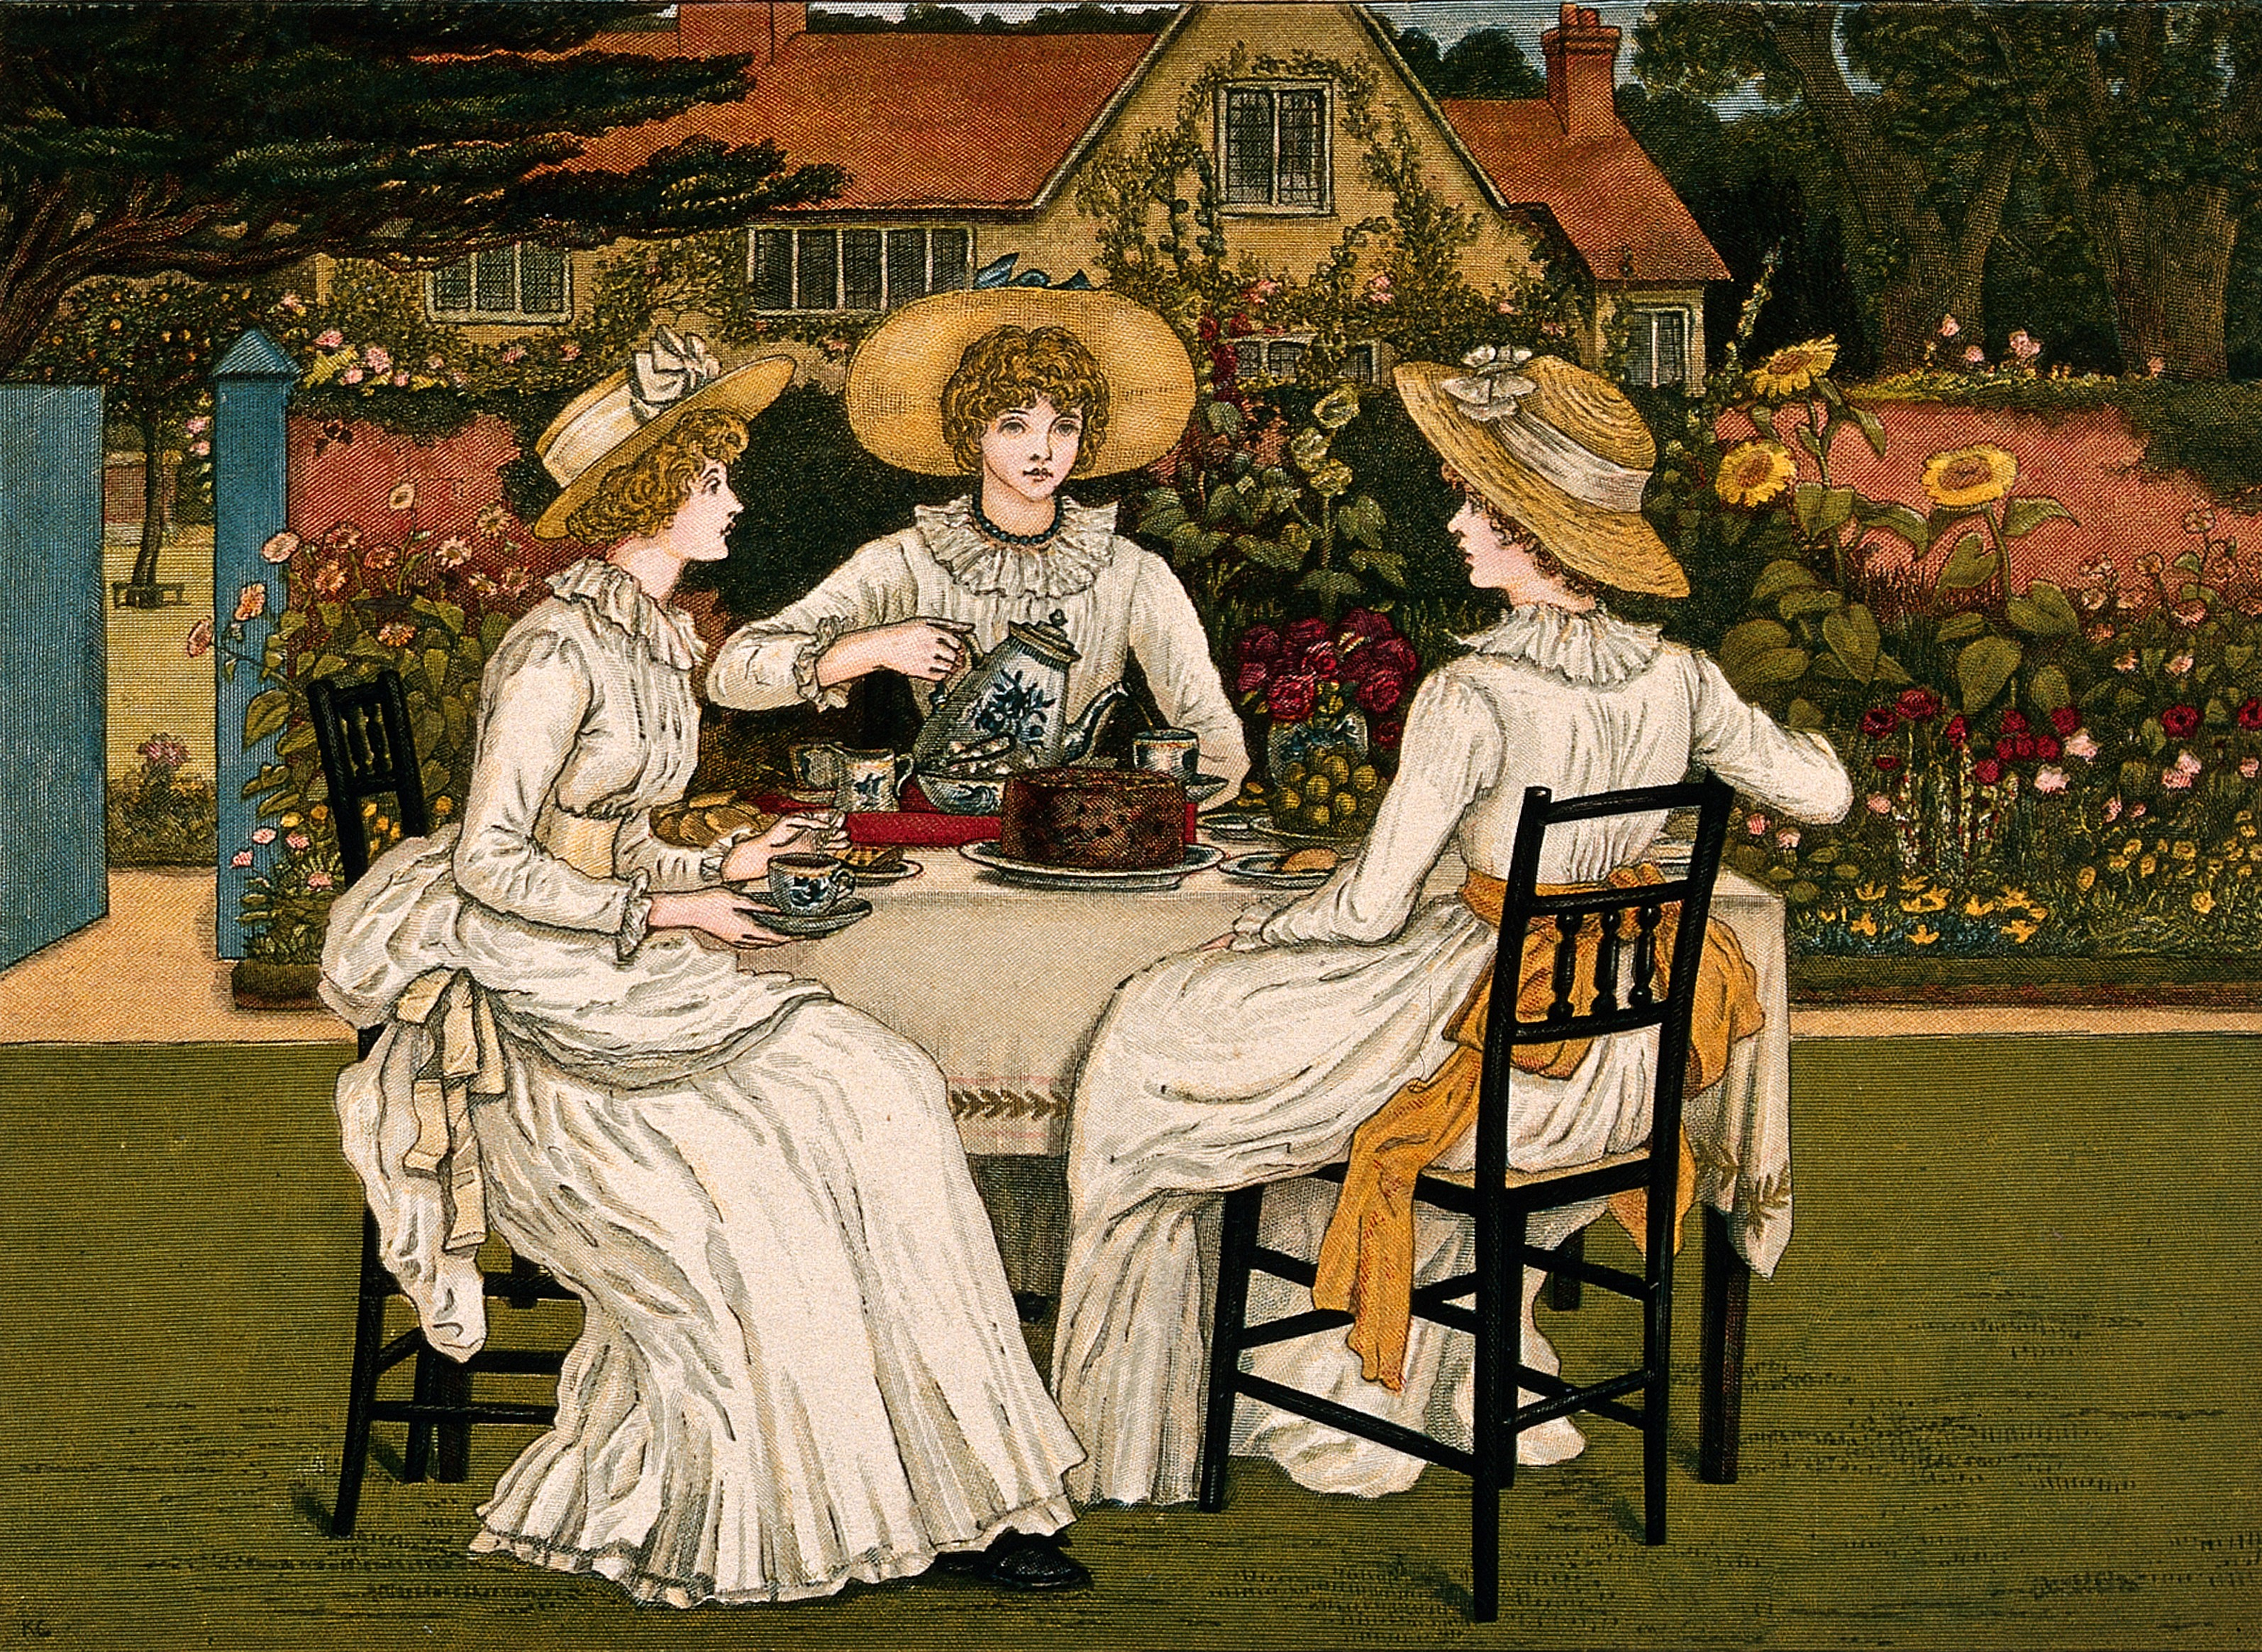 Dublin Shakespeare Society Three young woman are sitting at table in a garden having